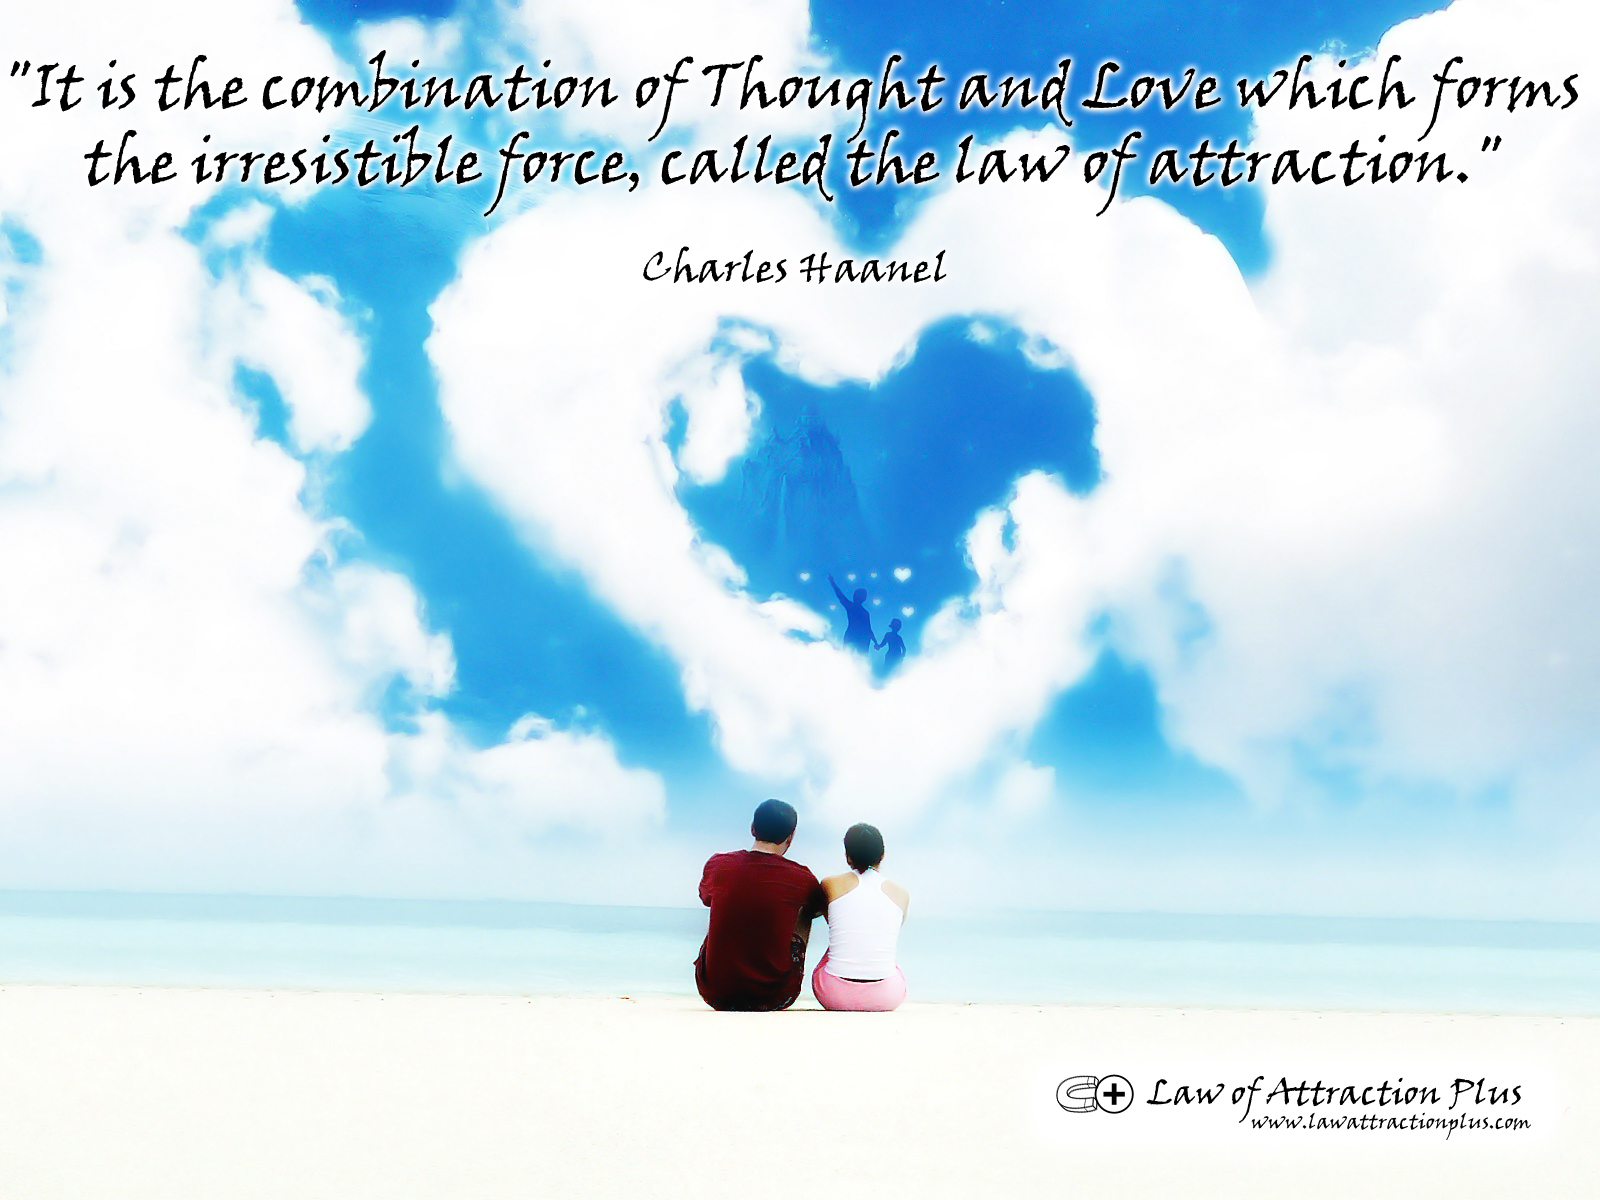 """ It Is The Combination Of Thought And Love Which Forms The Irresistible Force, Called The Law Of Attraction "" - Chaarles Haanel"